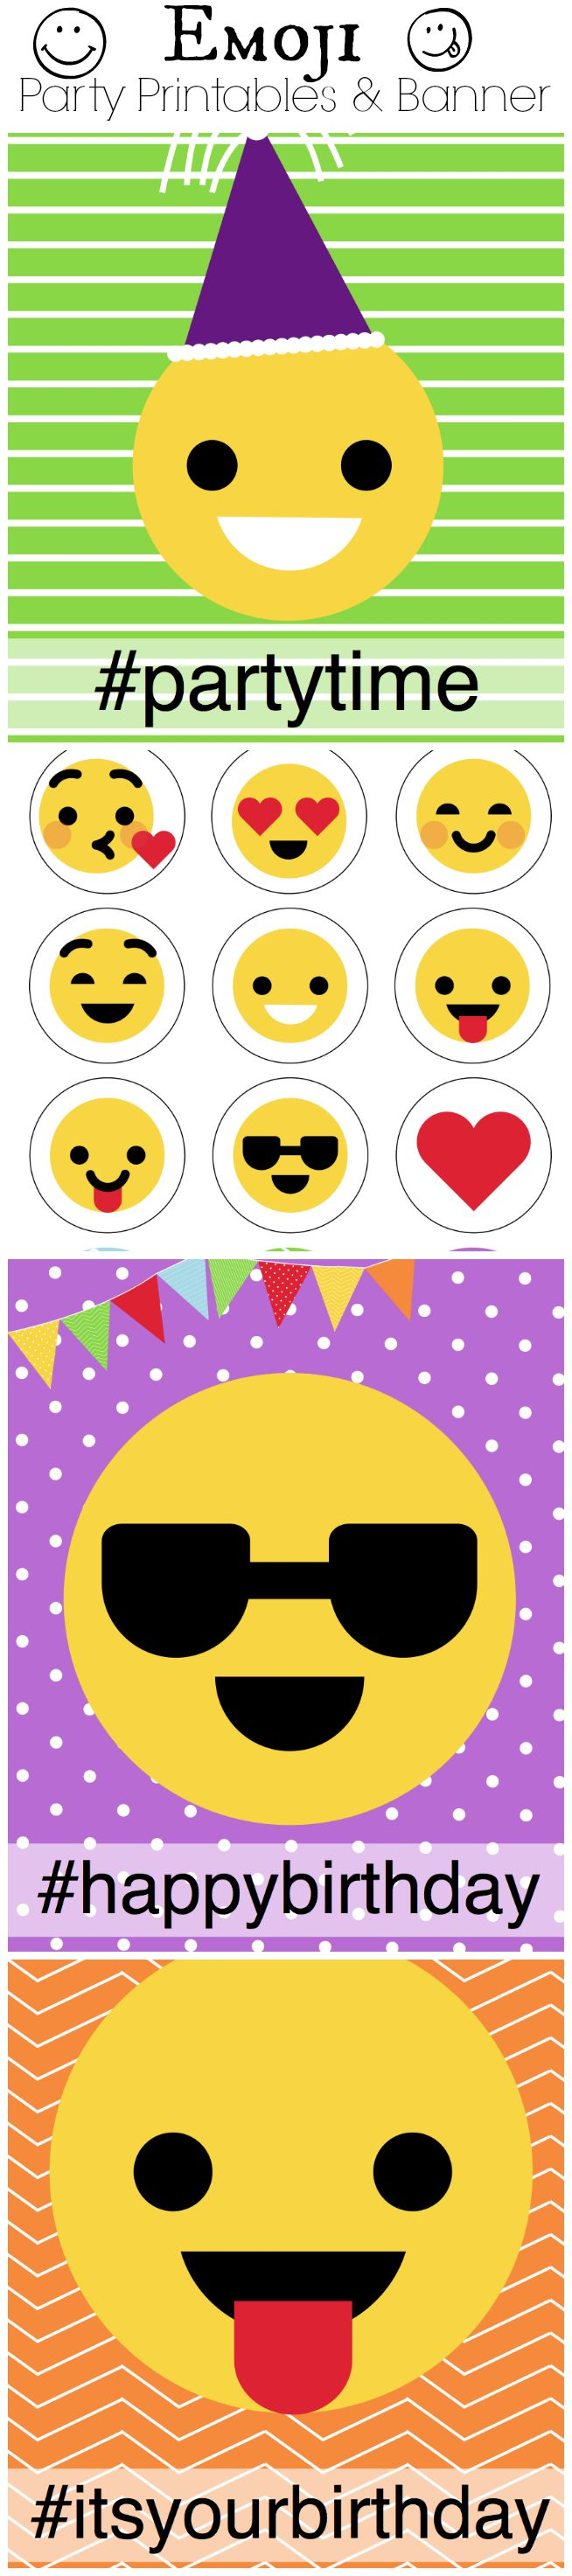 Emoji Party Free Printables And Banner